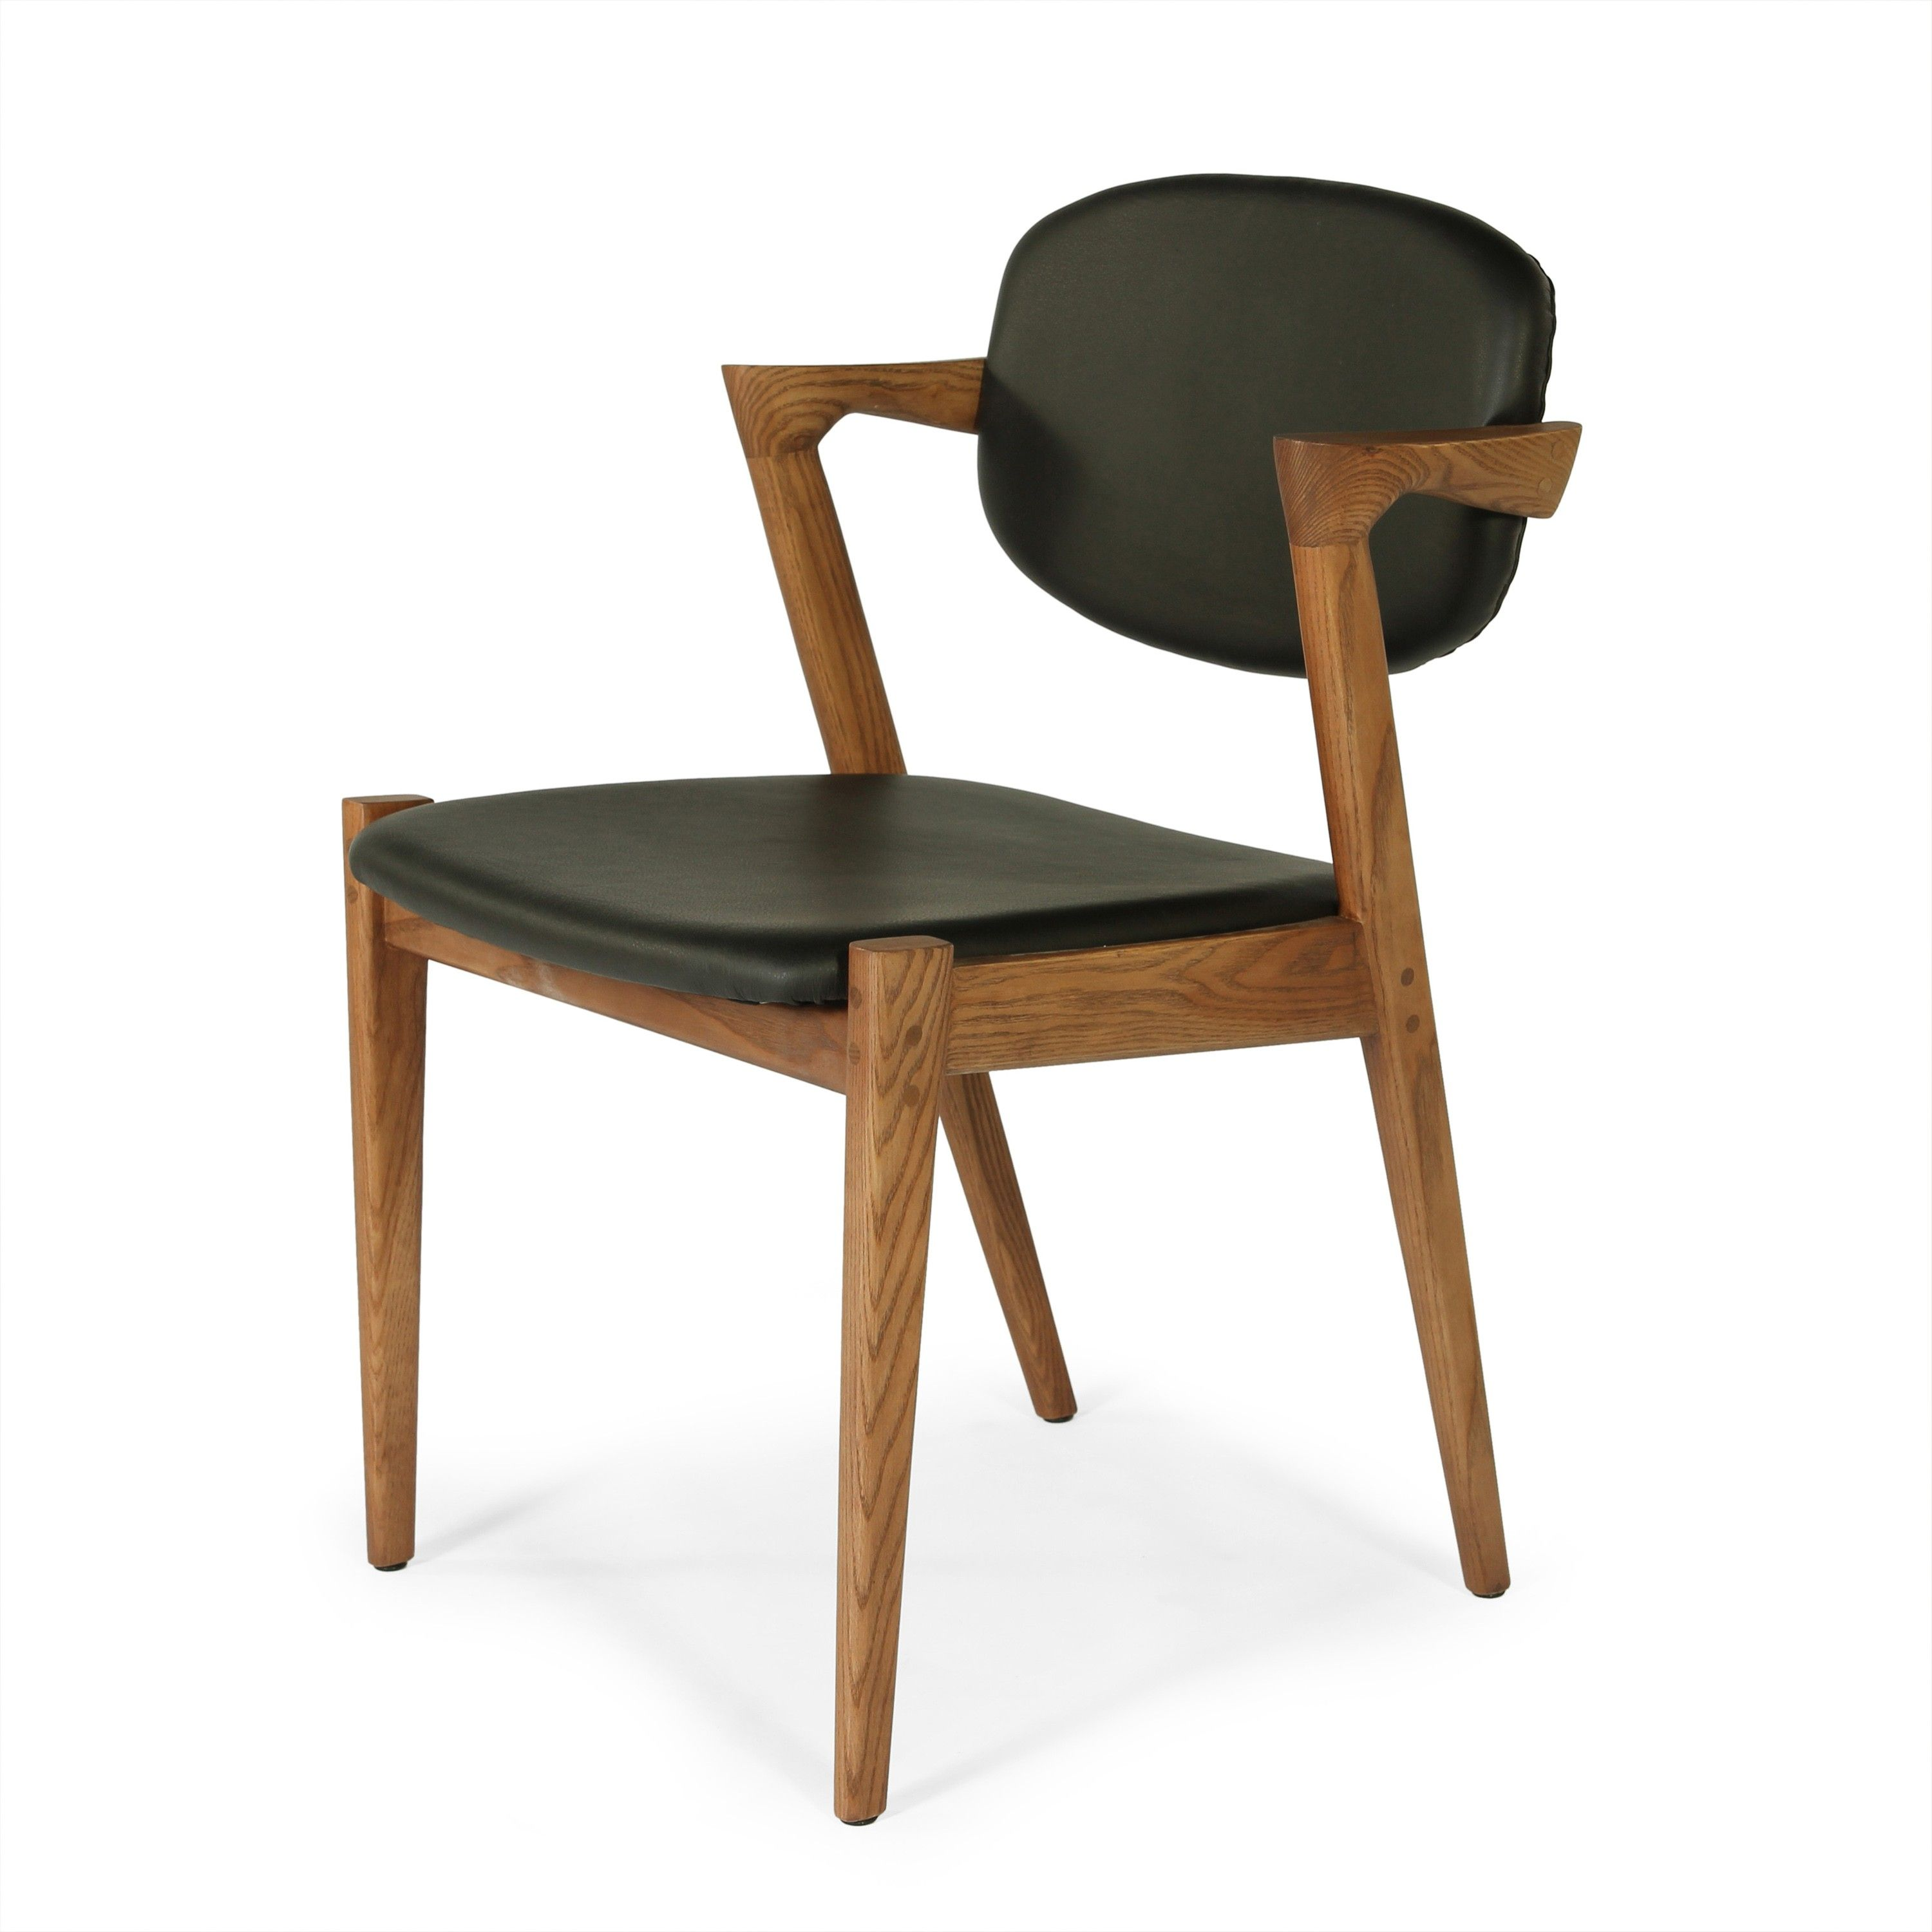 Model 42 Flap Back Dining Chair Black Leather Midcentury Modern Dining Chairs Dining Chairs Contemporary Dining Chairs